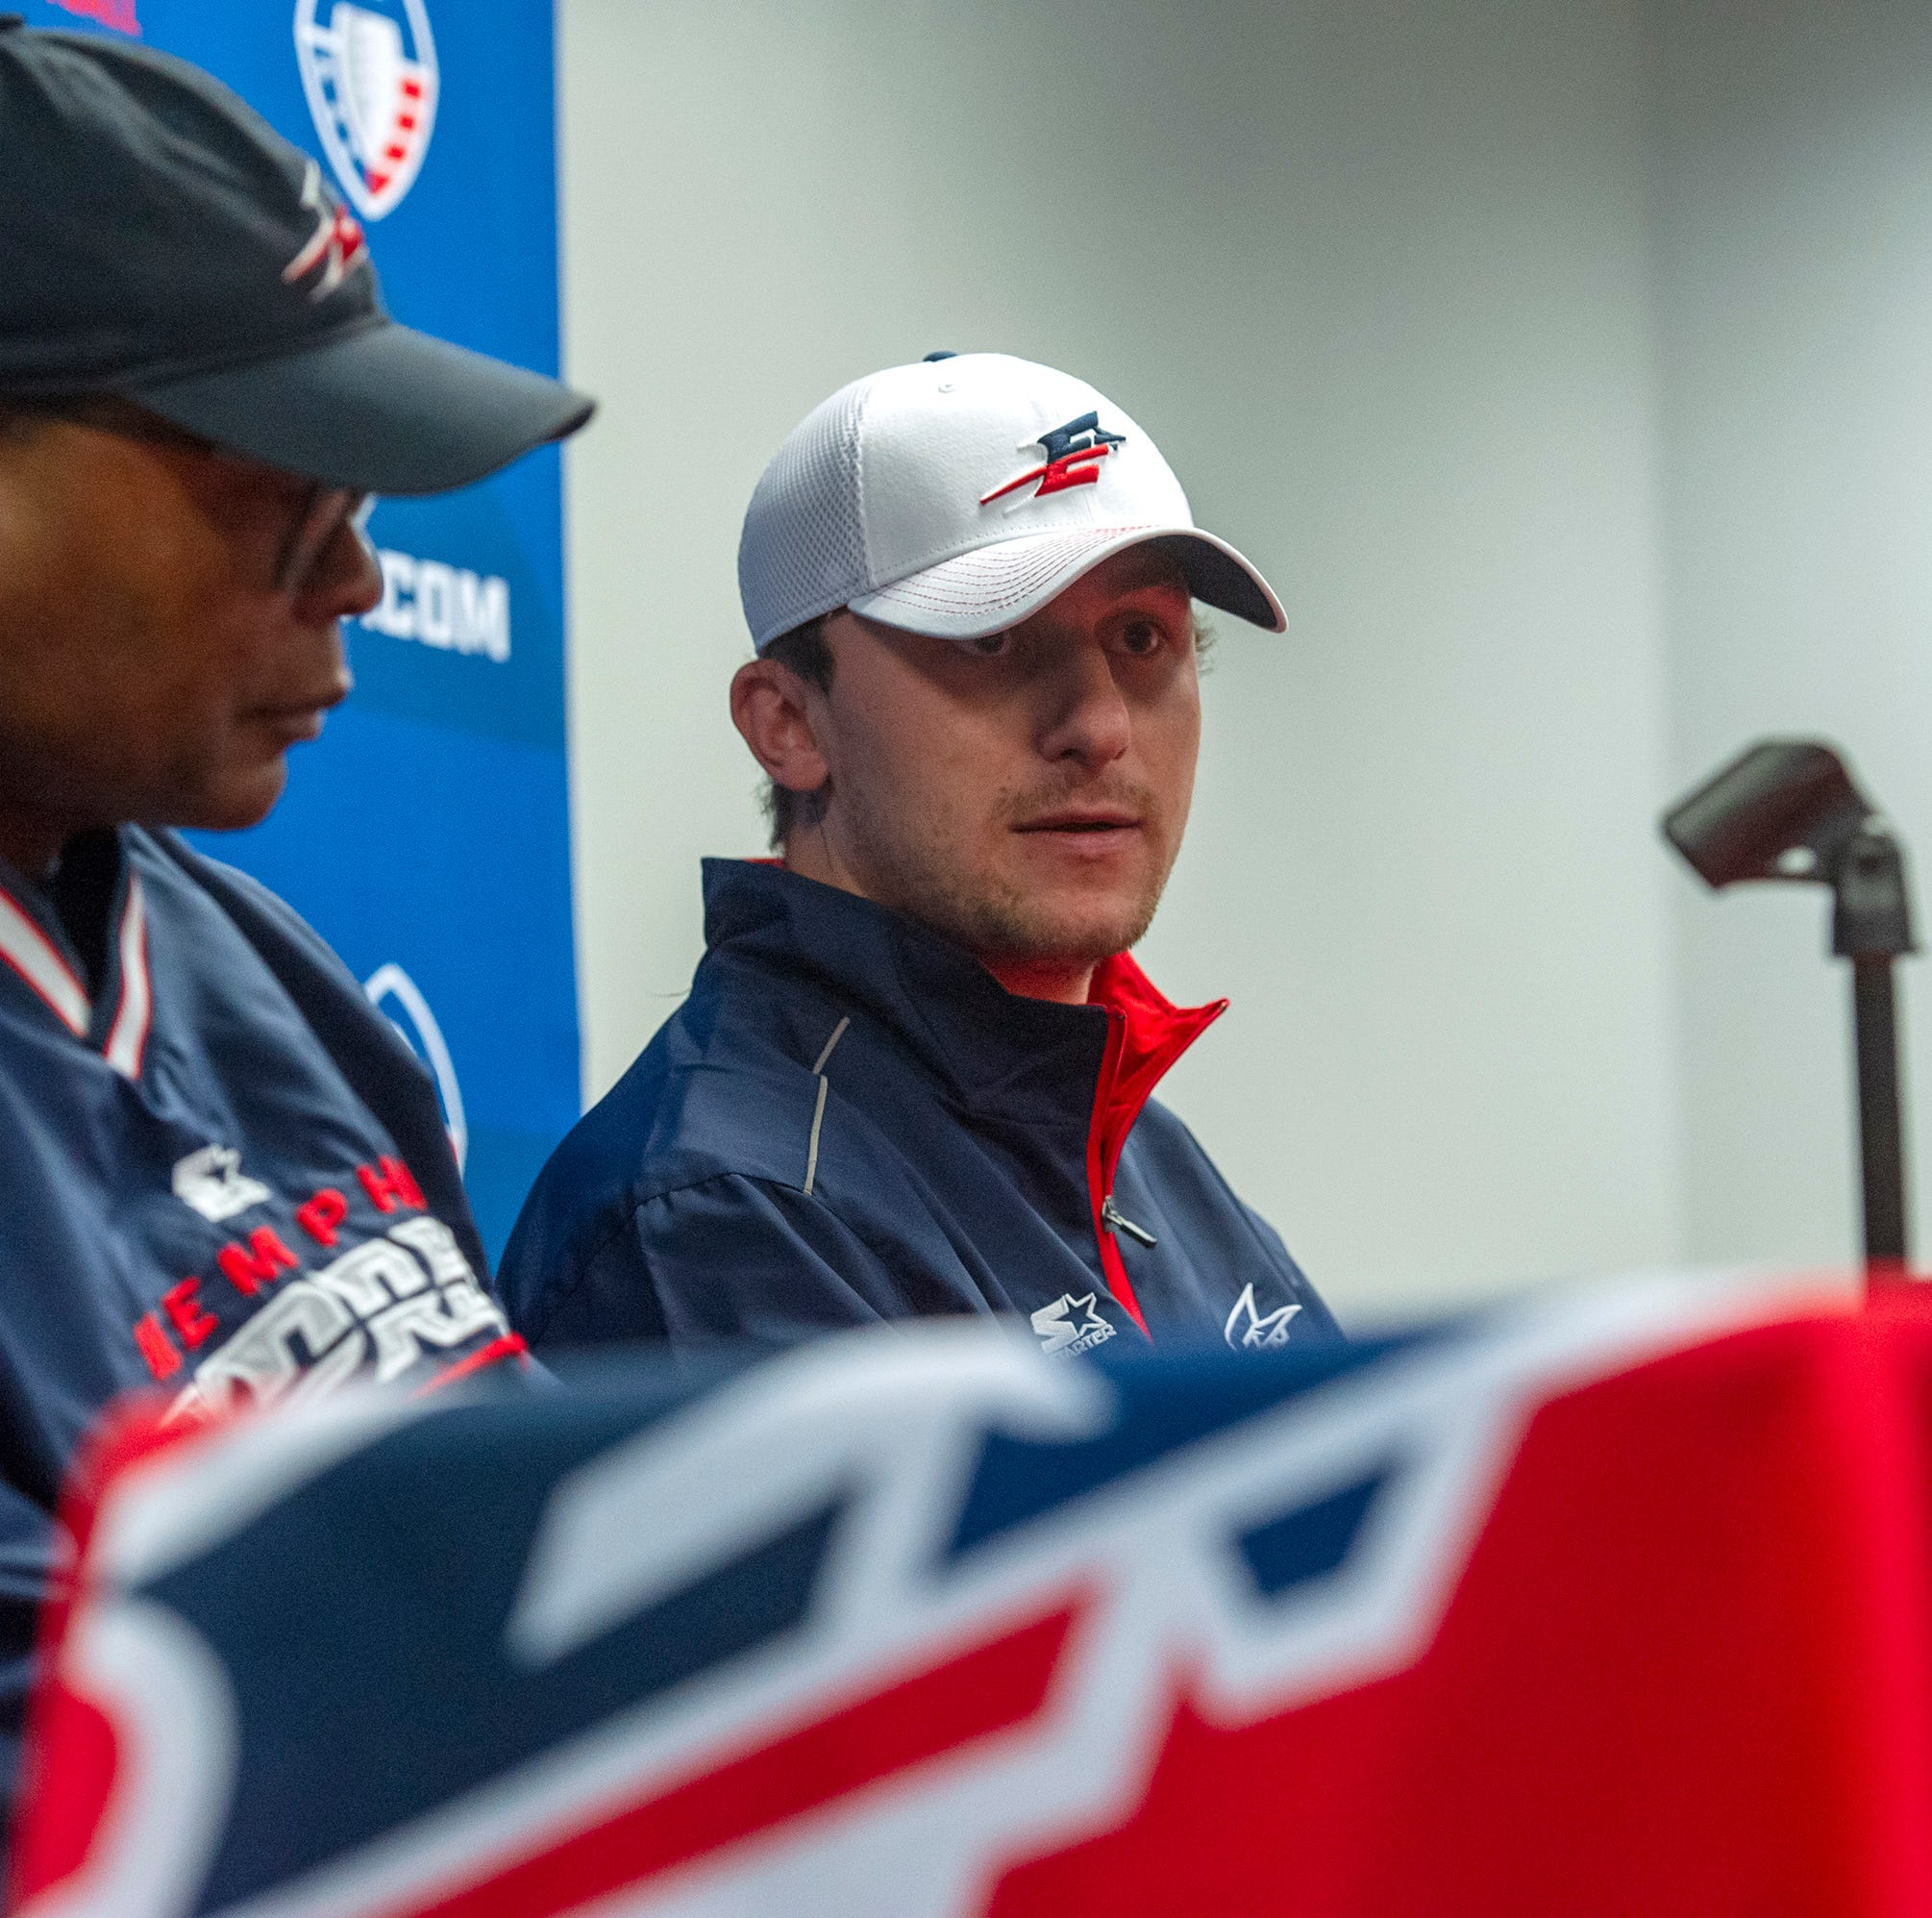 AAF tight-lipped about expectations for Memphis Express' Johnny Manziel away from football